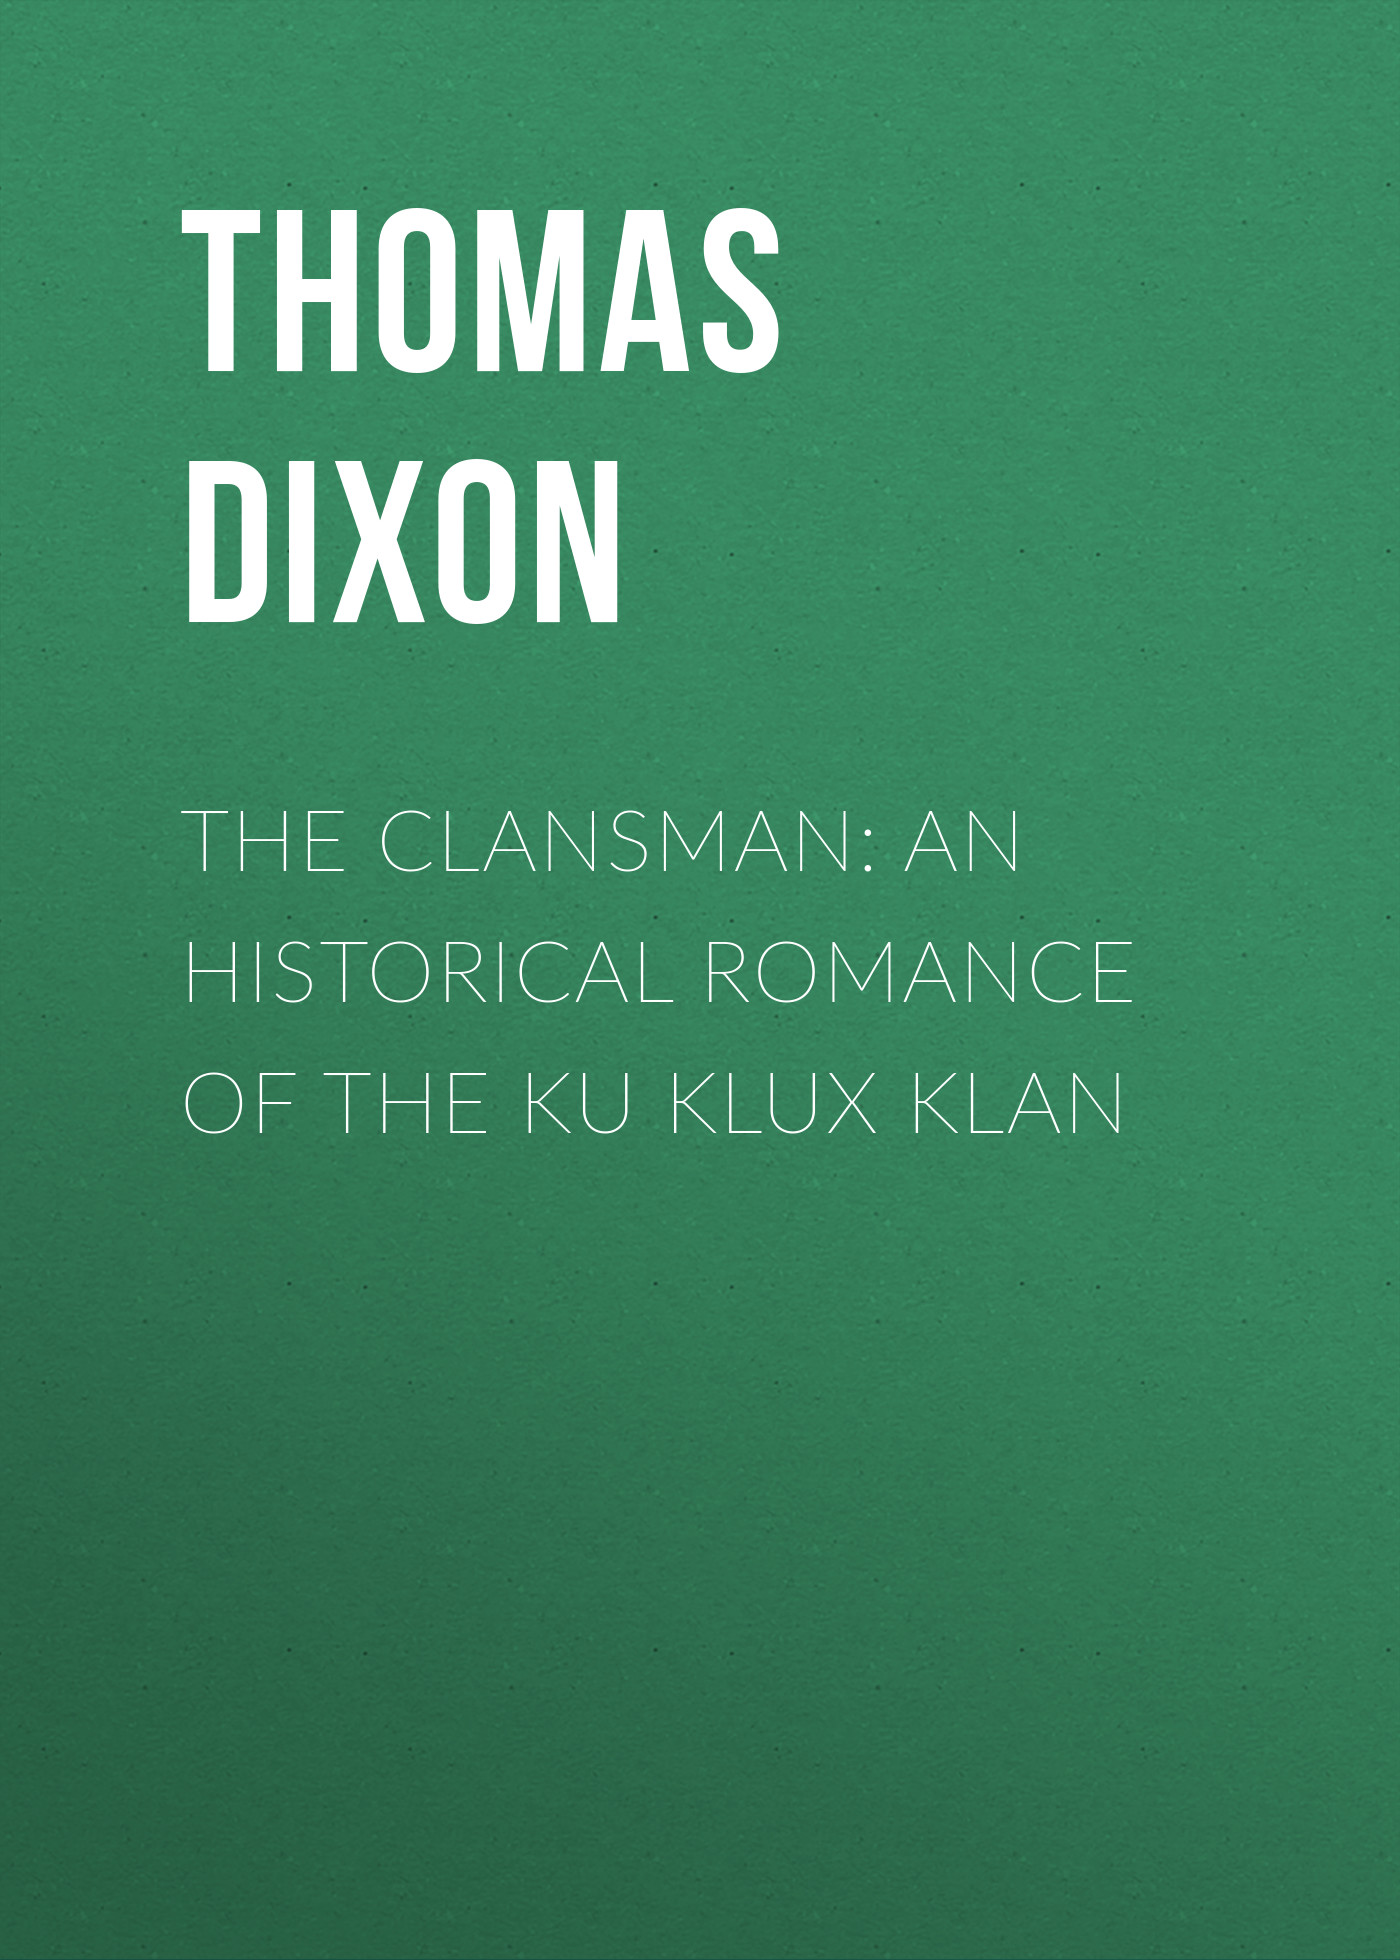 Thomas Dixon The Clansman: An Historical Romance of the Ku Klux Klan db7191 dave bella summer baby girls newborn infant toddler jumpsuits children short sleeve printing clothing baby romper